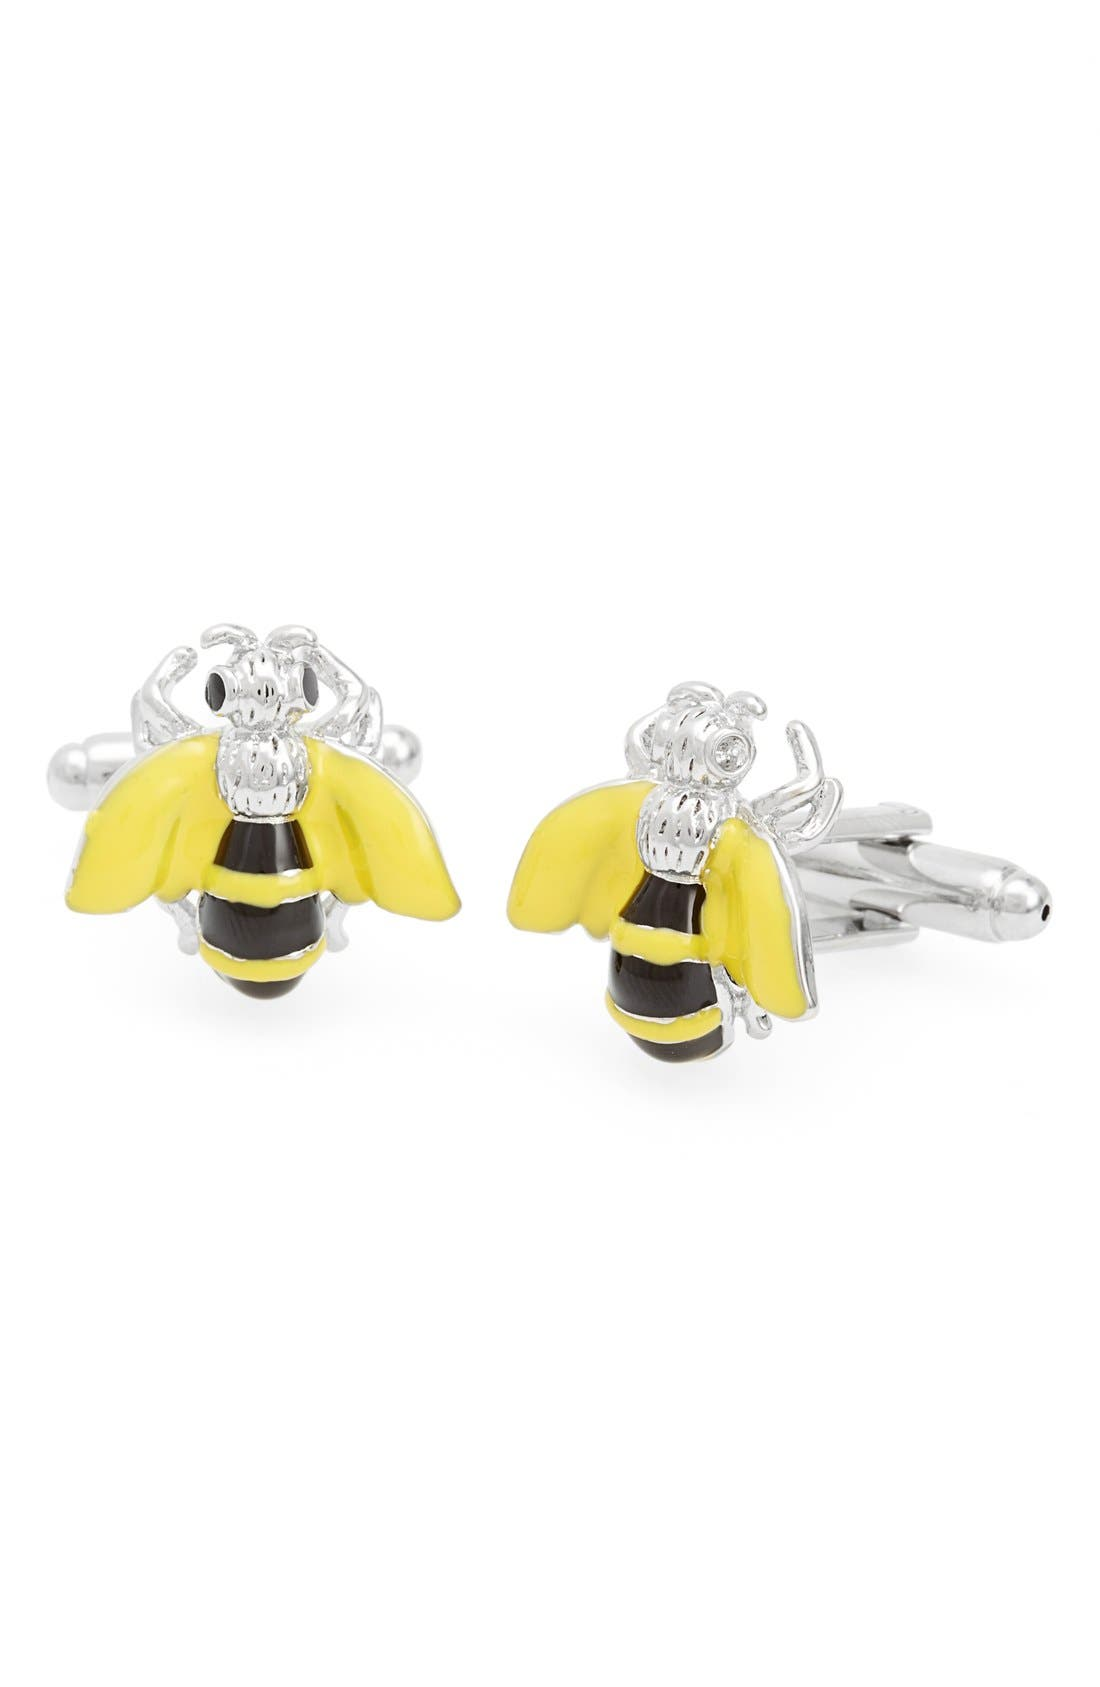 'Bee' Cuff Links,                             Main thumbnail 1, color,                             Silver/ Black/ Yellow Wings